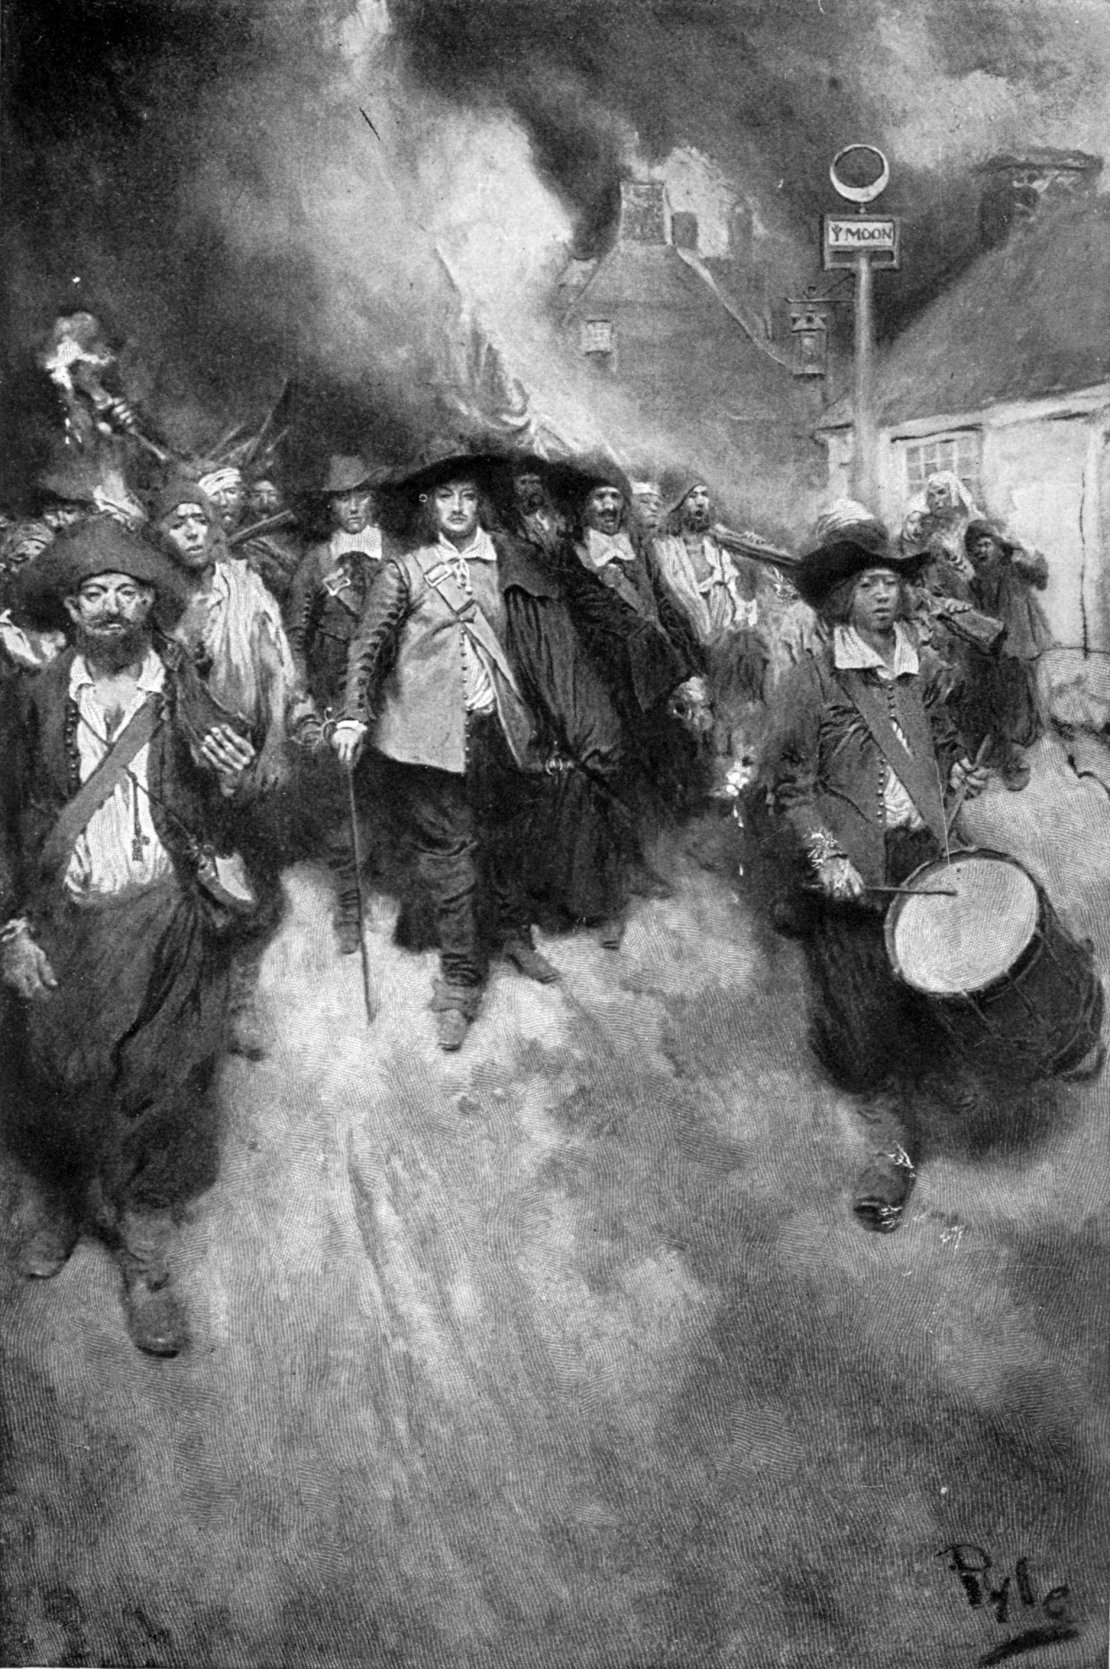 howard_pyle_-_the_burning_of_jamestown